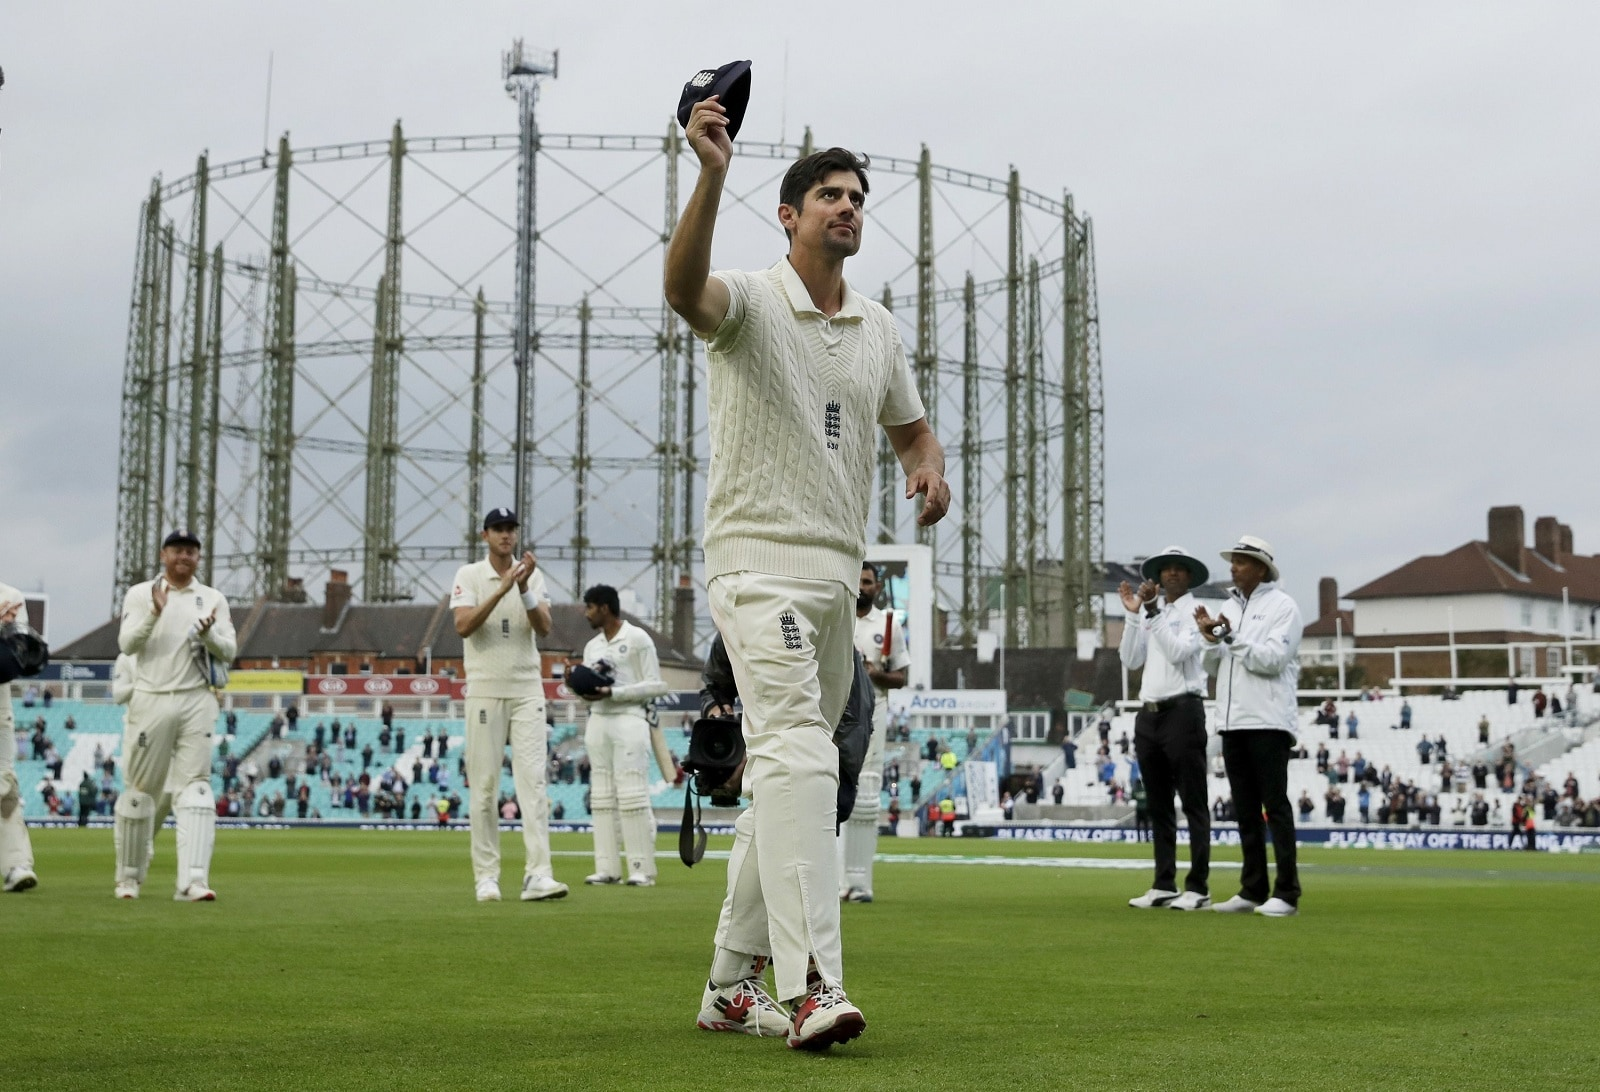 England's Alastair Cook, at the end of his final match before retiring from test cricket, raises his cap as he walks off at the end of the fifth cricket test match of a five match series between England and India at the Oval cricket ground in London, on September 11, 2018. (AP Photo/Matt Dunham)